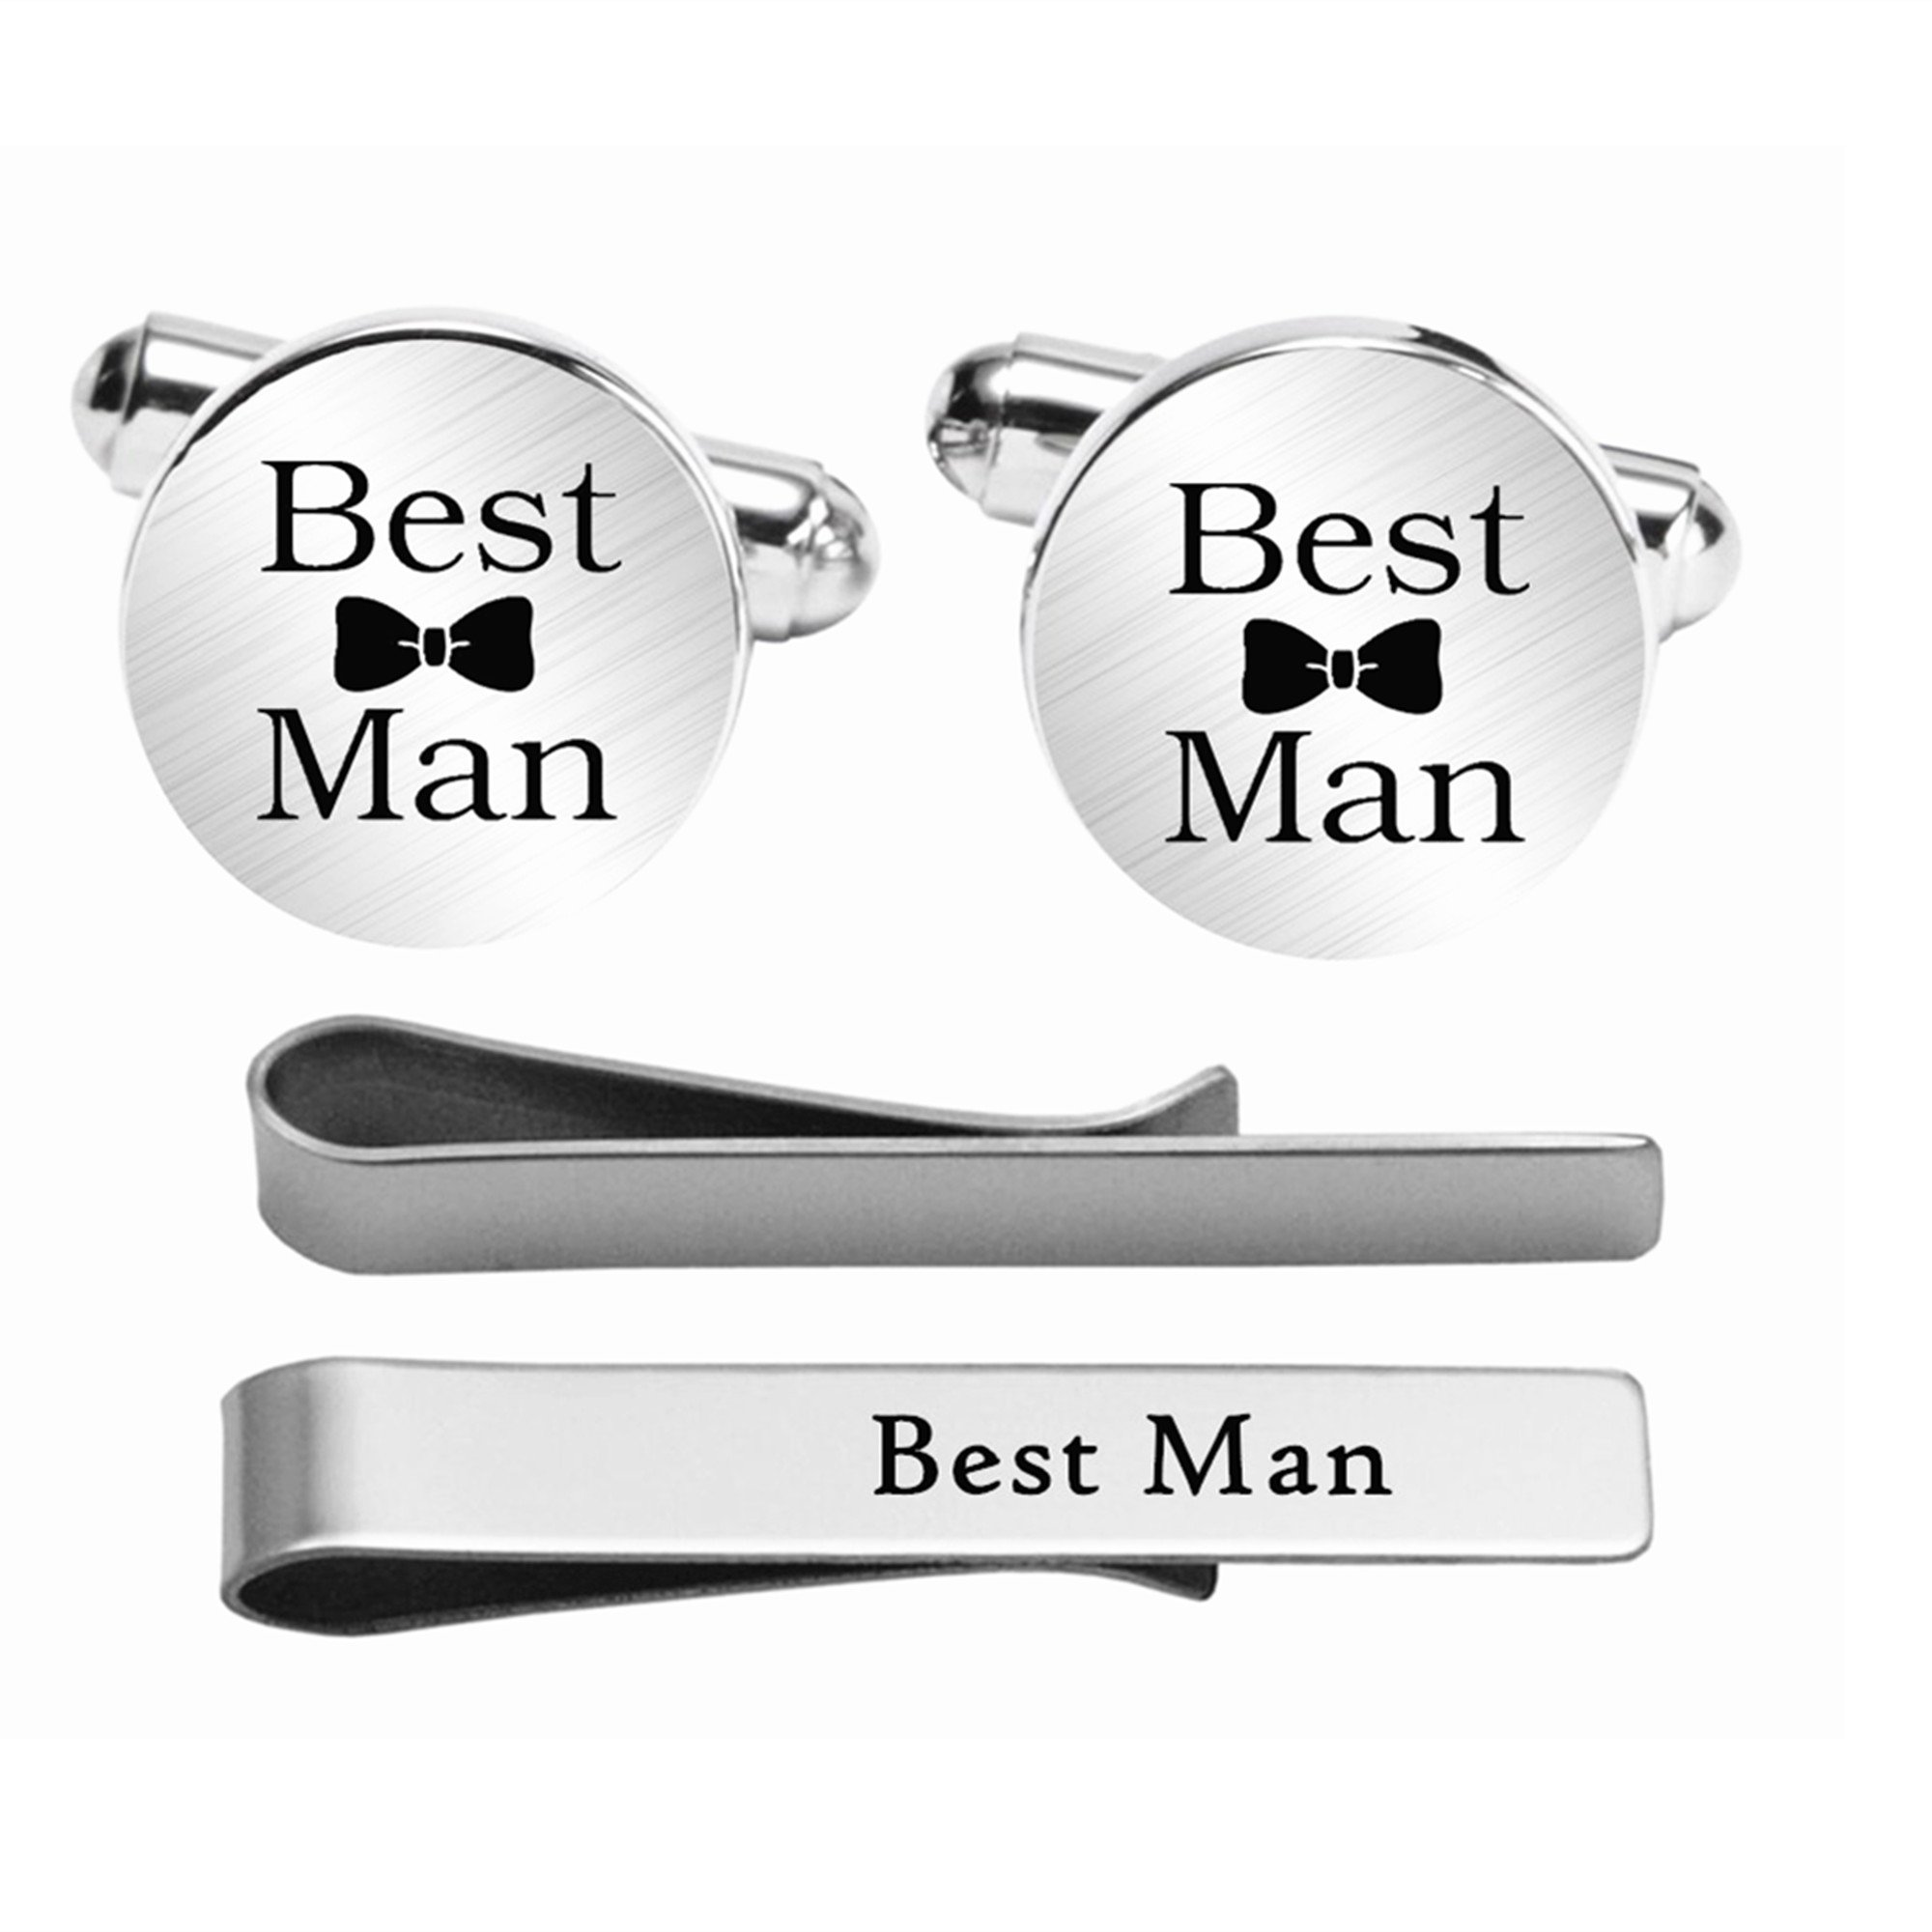 Kooer Custom Personalized Wedding Engraved Cuff Links Tie Clip Set Engrave Wedding Cufflinks Jewelry Gift (Brother of the bride set)